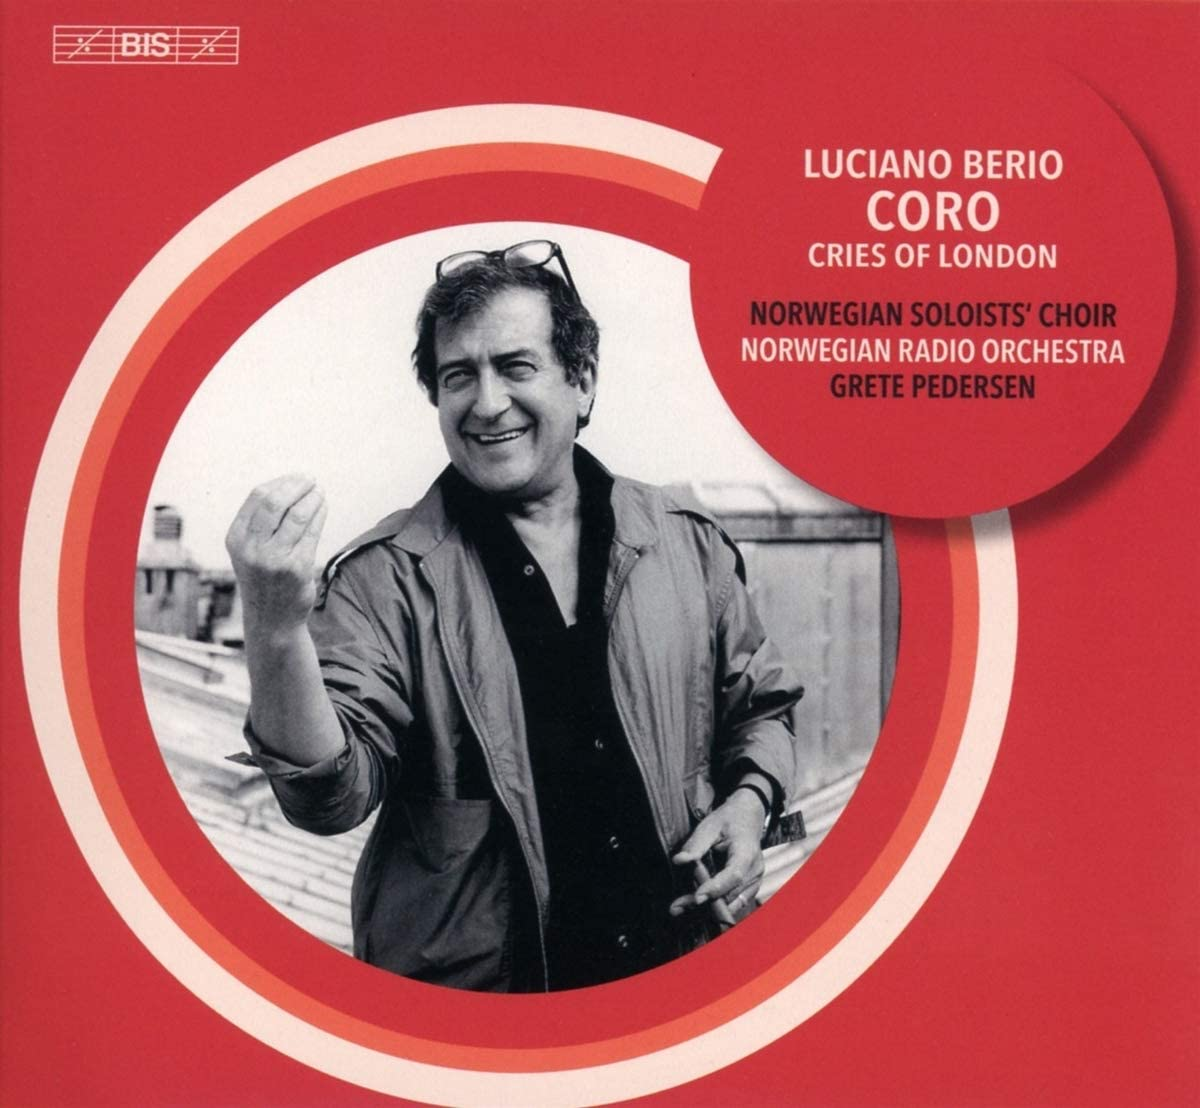 Review of BERIO Coro. Cries of London (Version for 8 Voices)